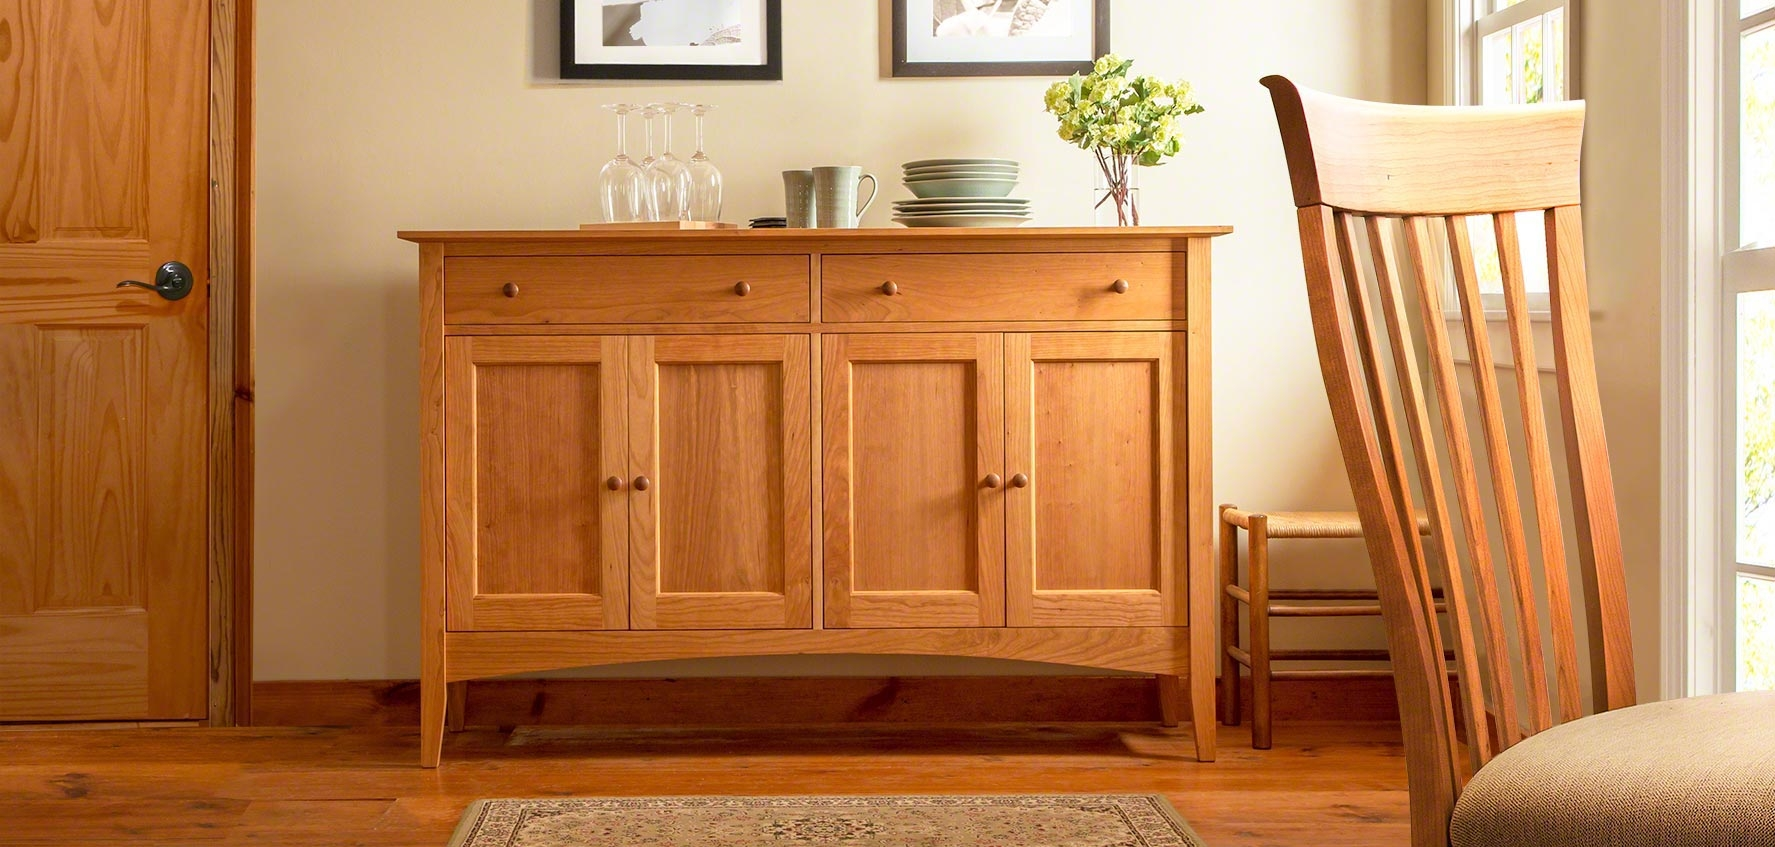 shaker furniture vermont woods studios fine furniture and home decor